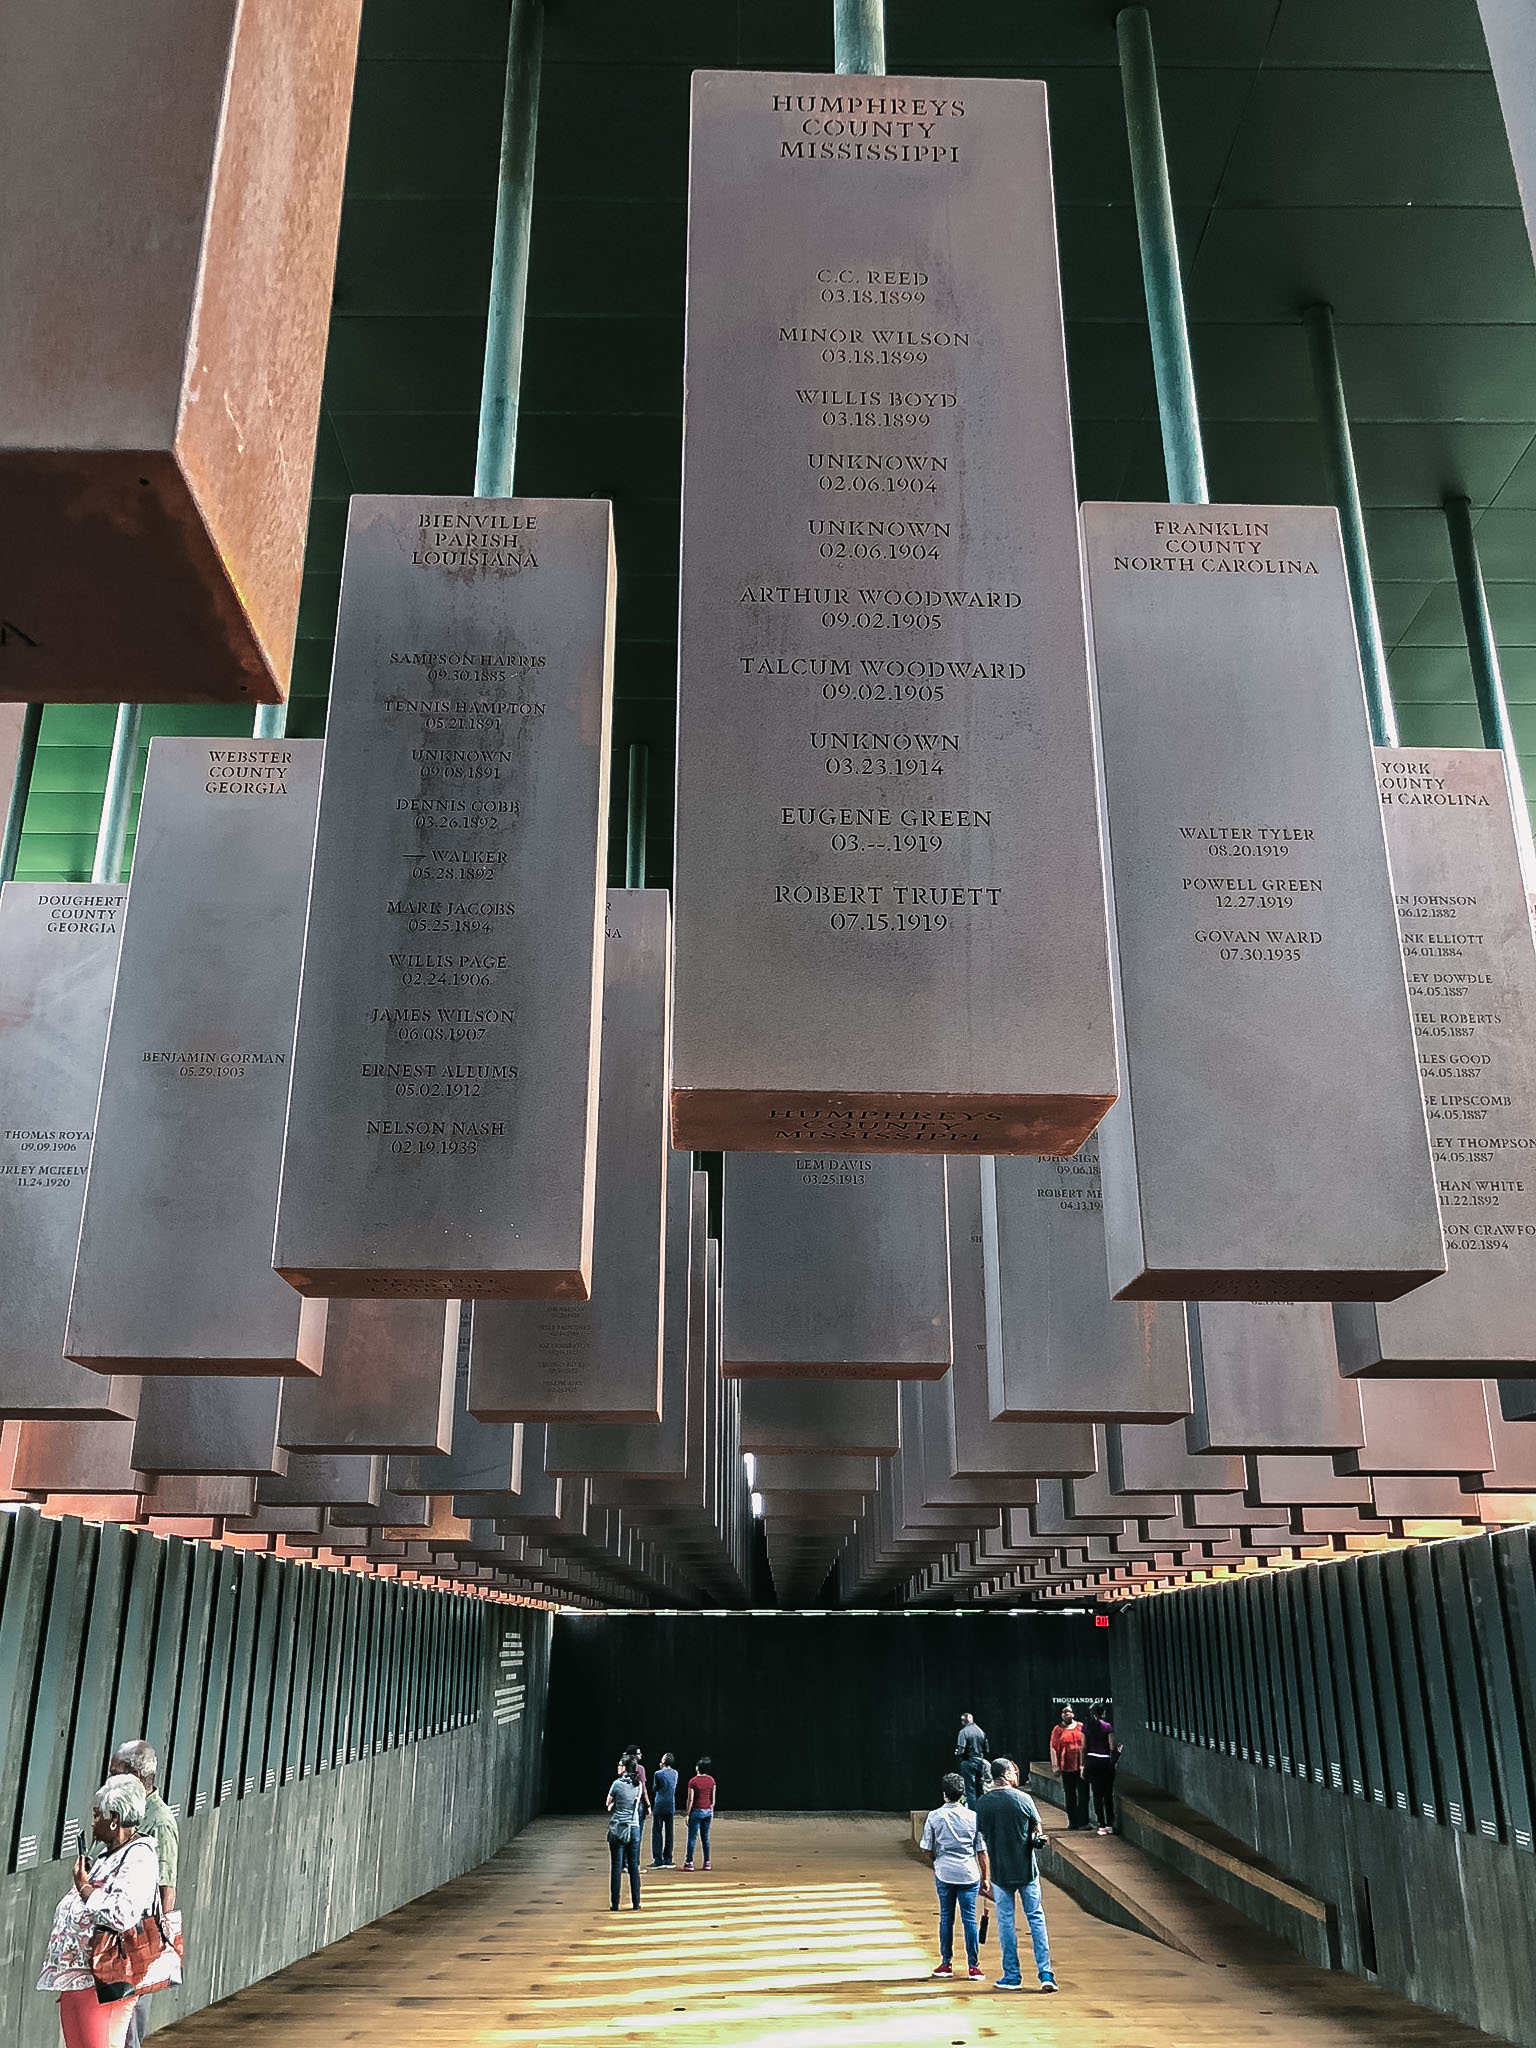 Upon entering the space, the steel monuments are installed on the ground. As you walk further downhill though the space, the memorials hang above you, a chilling reminder of the inhumane racial terror lynchings of more than 4,000 African American men and women.